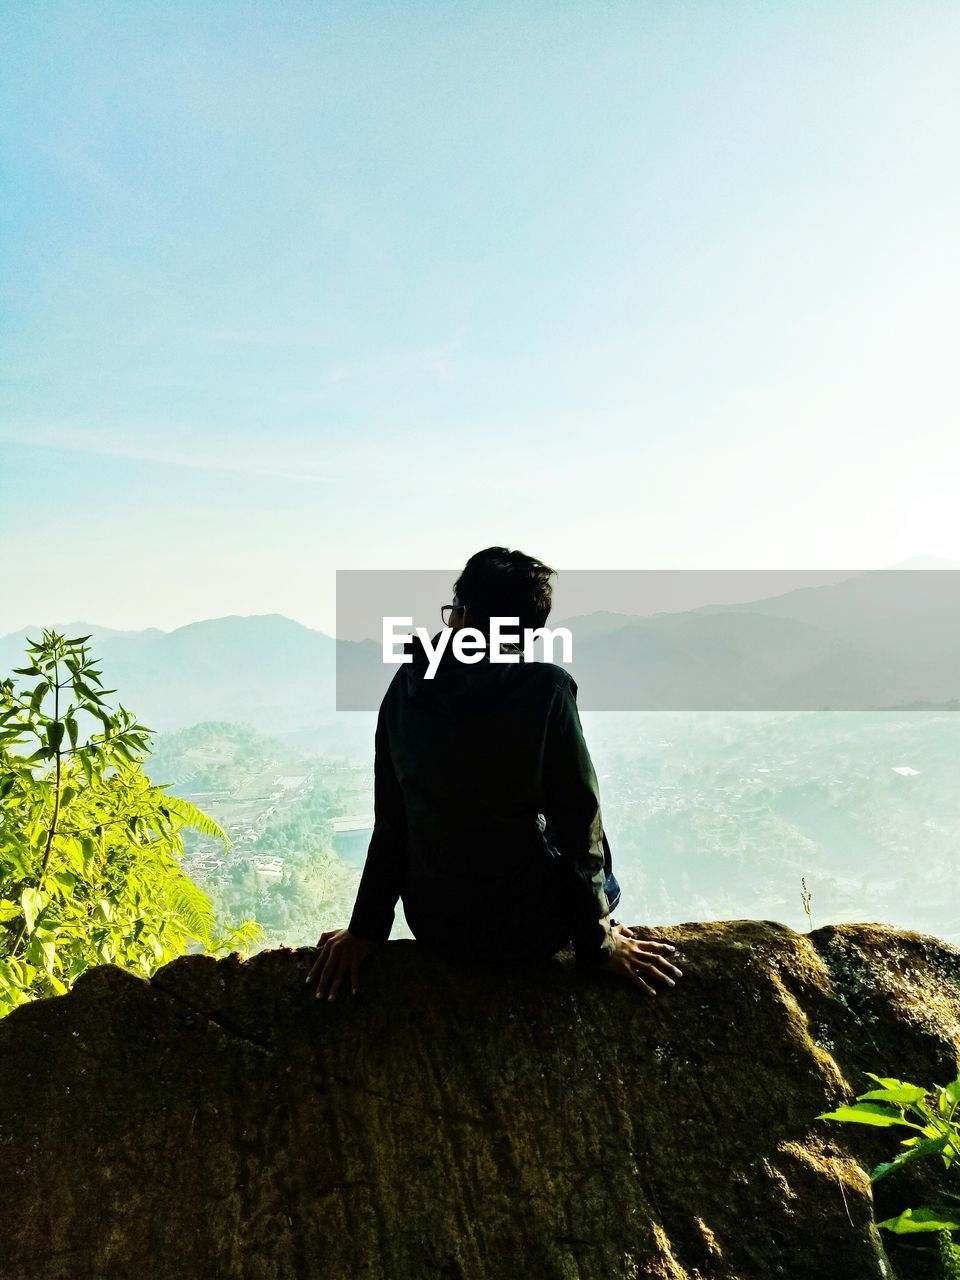 mountain, nature, real people, one person, mountain range, leisure activity, beauty in nature, lifestyles, clear sky, scenics, sky, day, tranquil scene, outdoors, casual clothing, landscape, men, tranquility, standing, sitting, full length, young adult, people